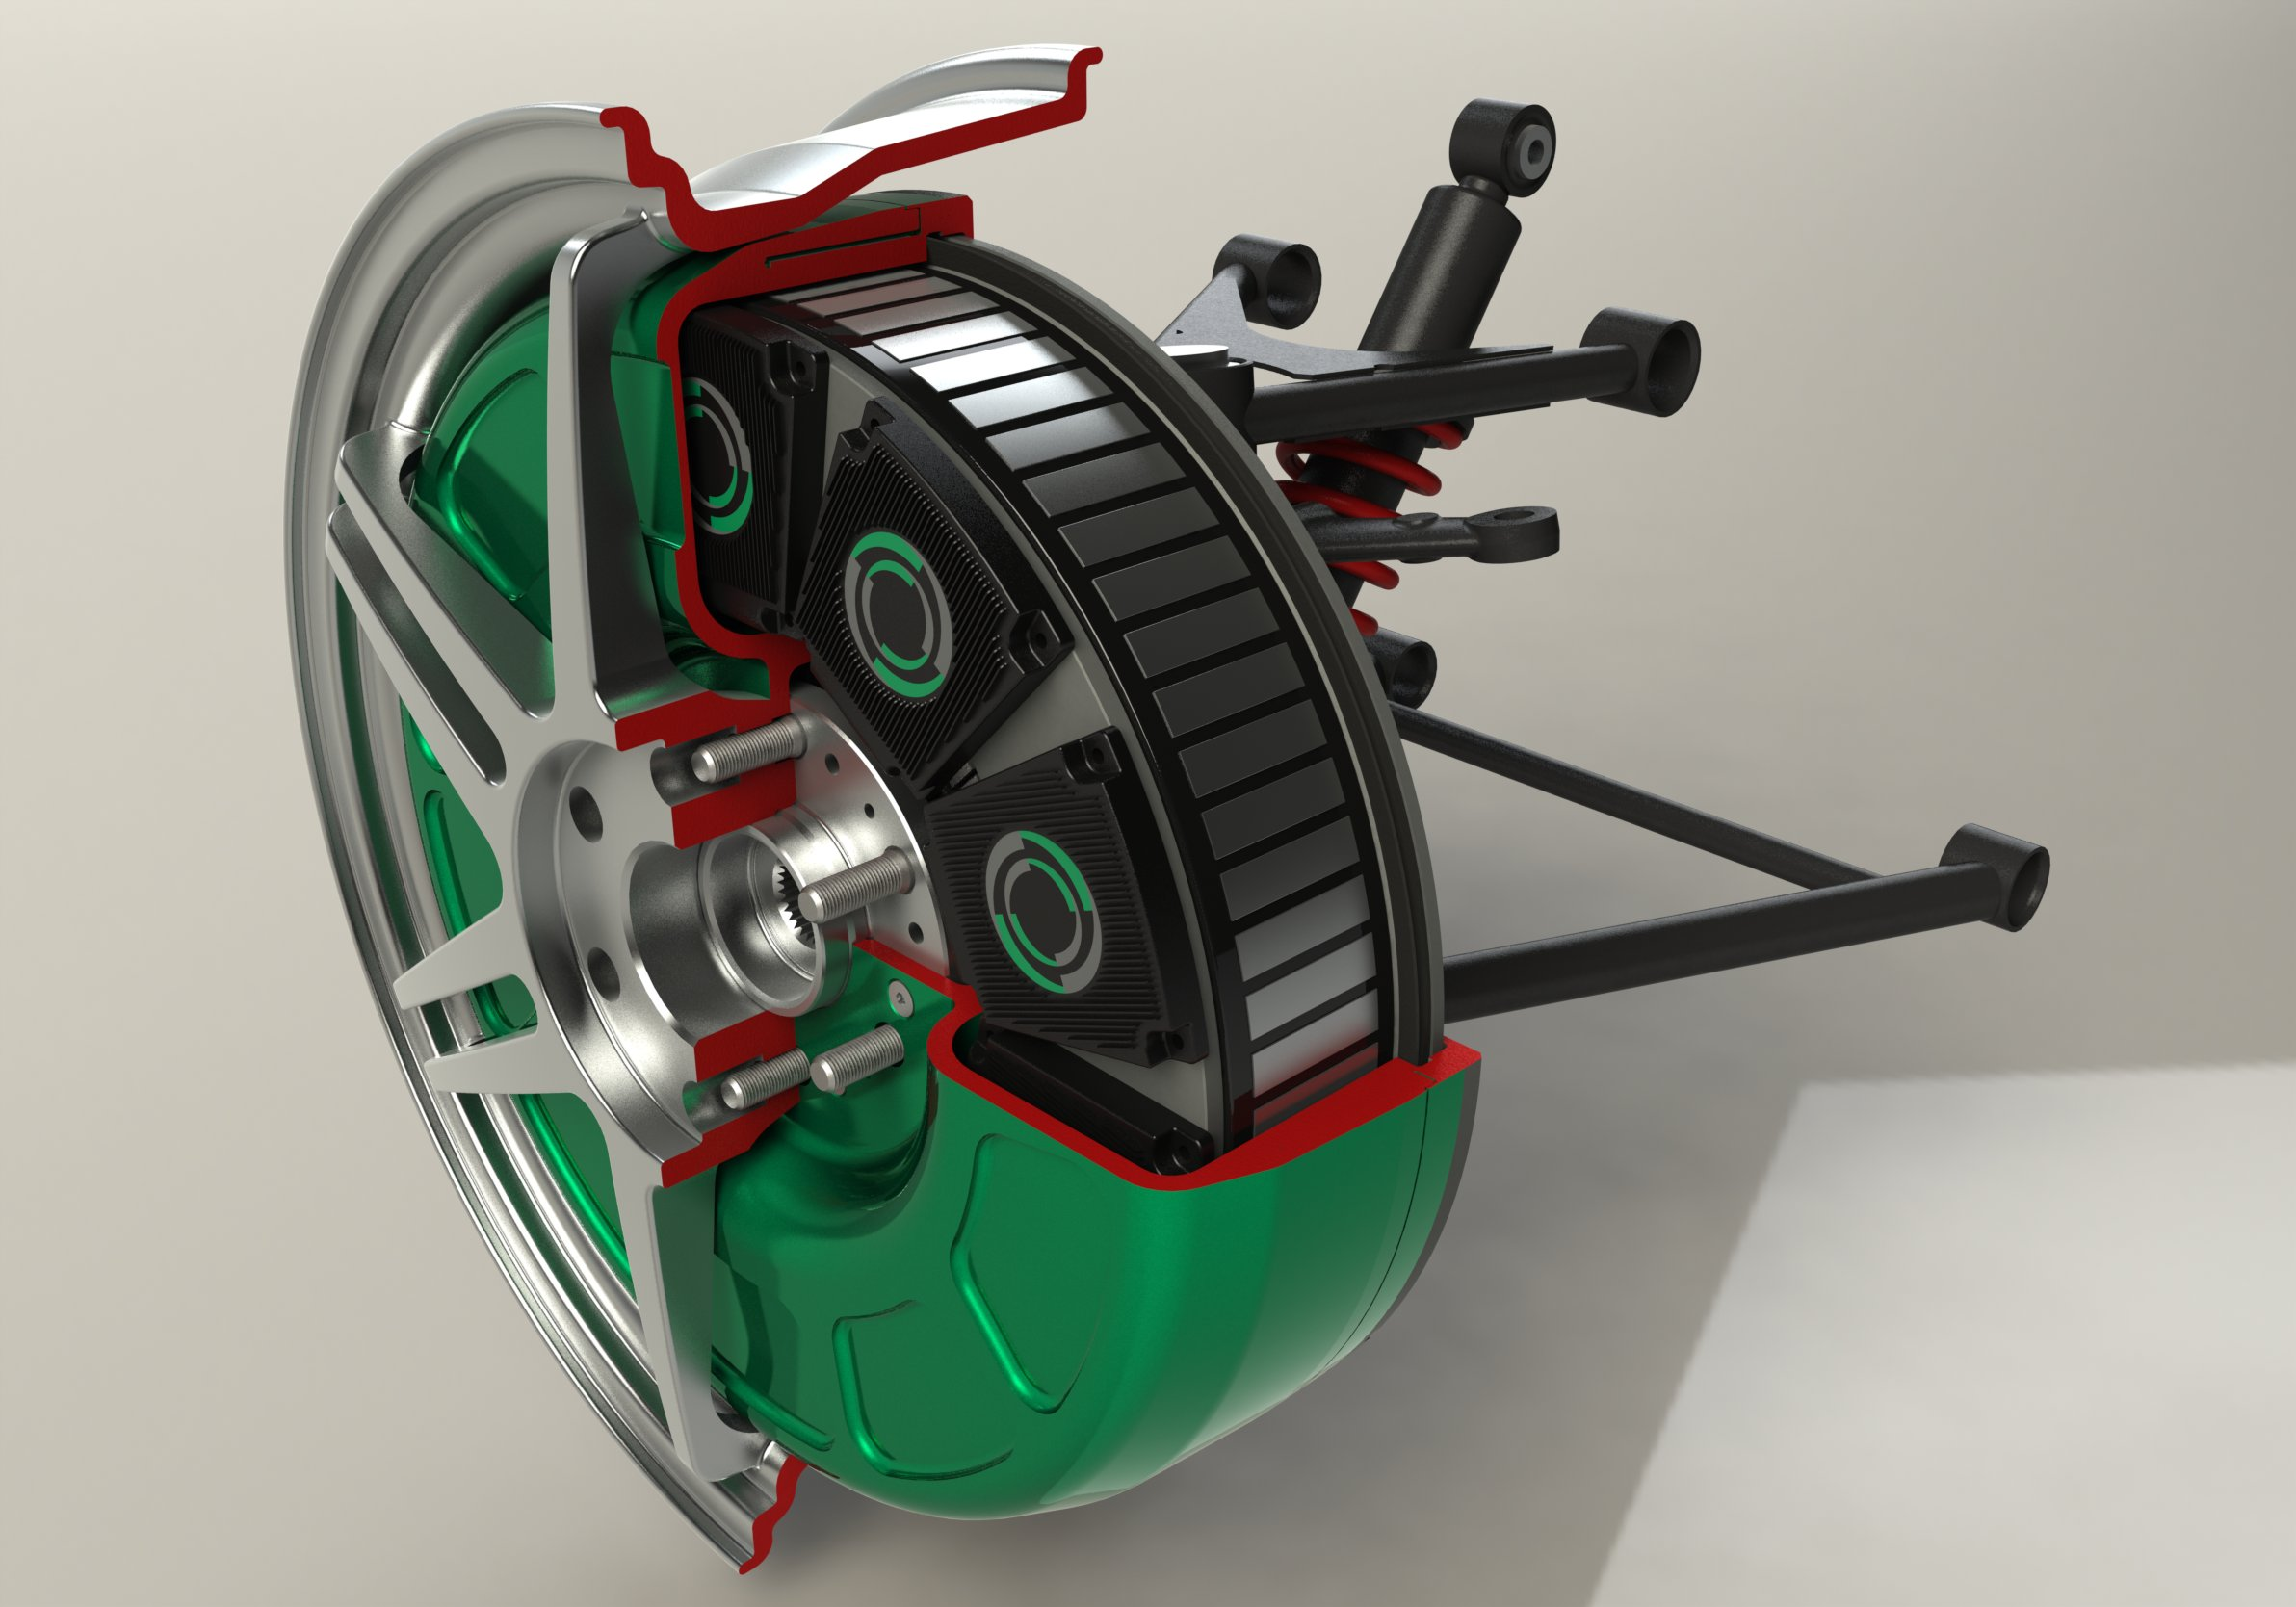 TT electronics Develops Advanced Modules for in-Wheel Electric Drive